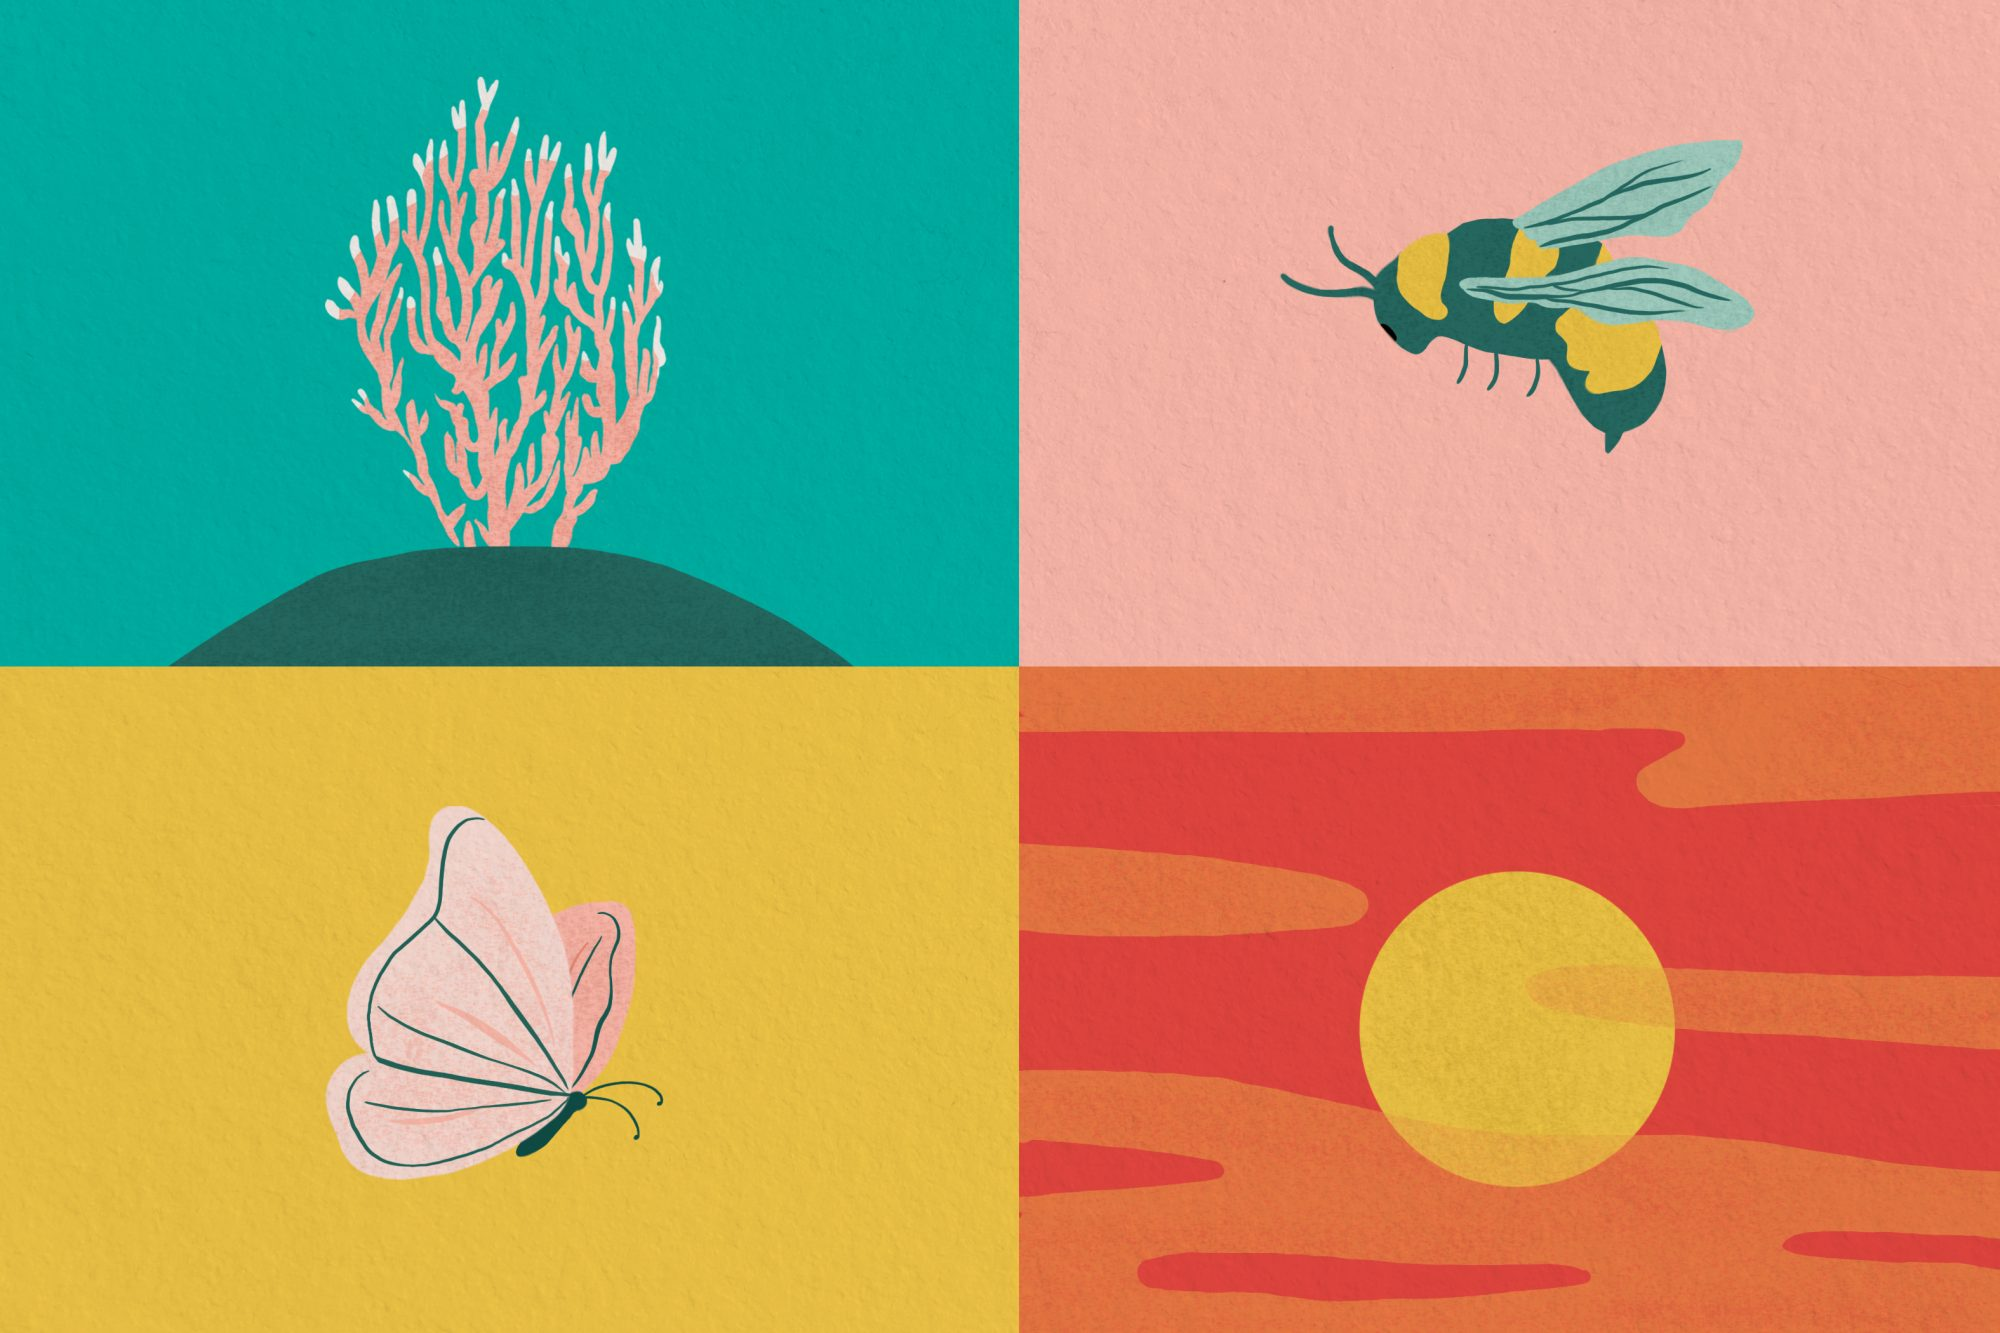 how food systems affects the environment: coral reef, bees, butterfly, sunset